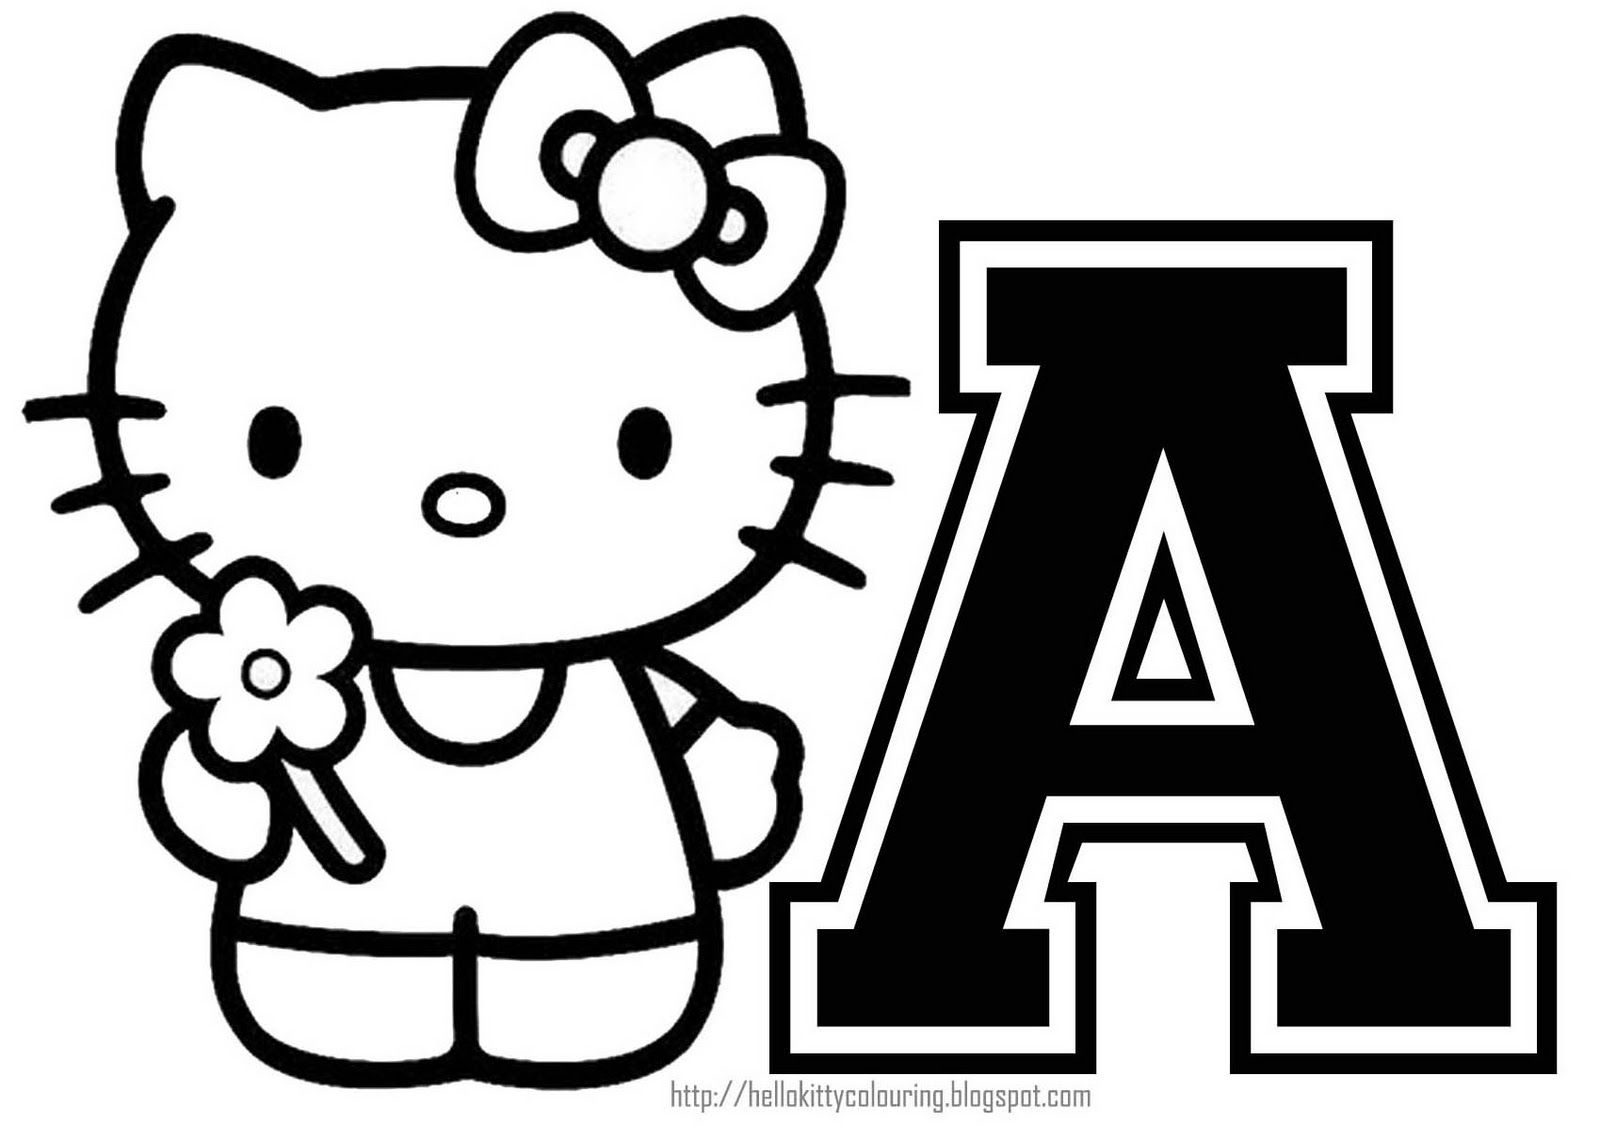 free printable hello kitty coloring pages party invitations activity sheets and paper crafts for hello kitty fans the world over - Coloring Paper